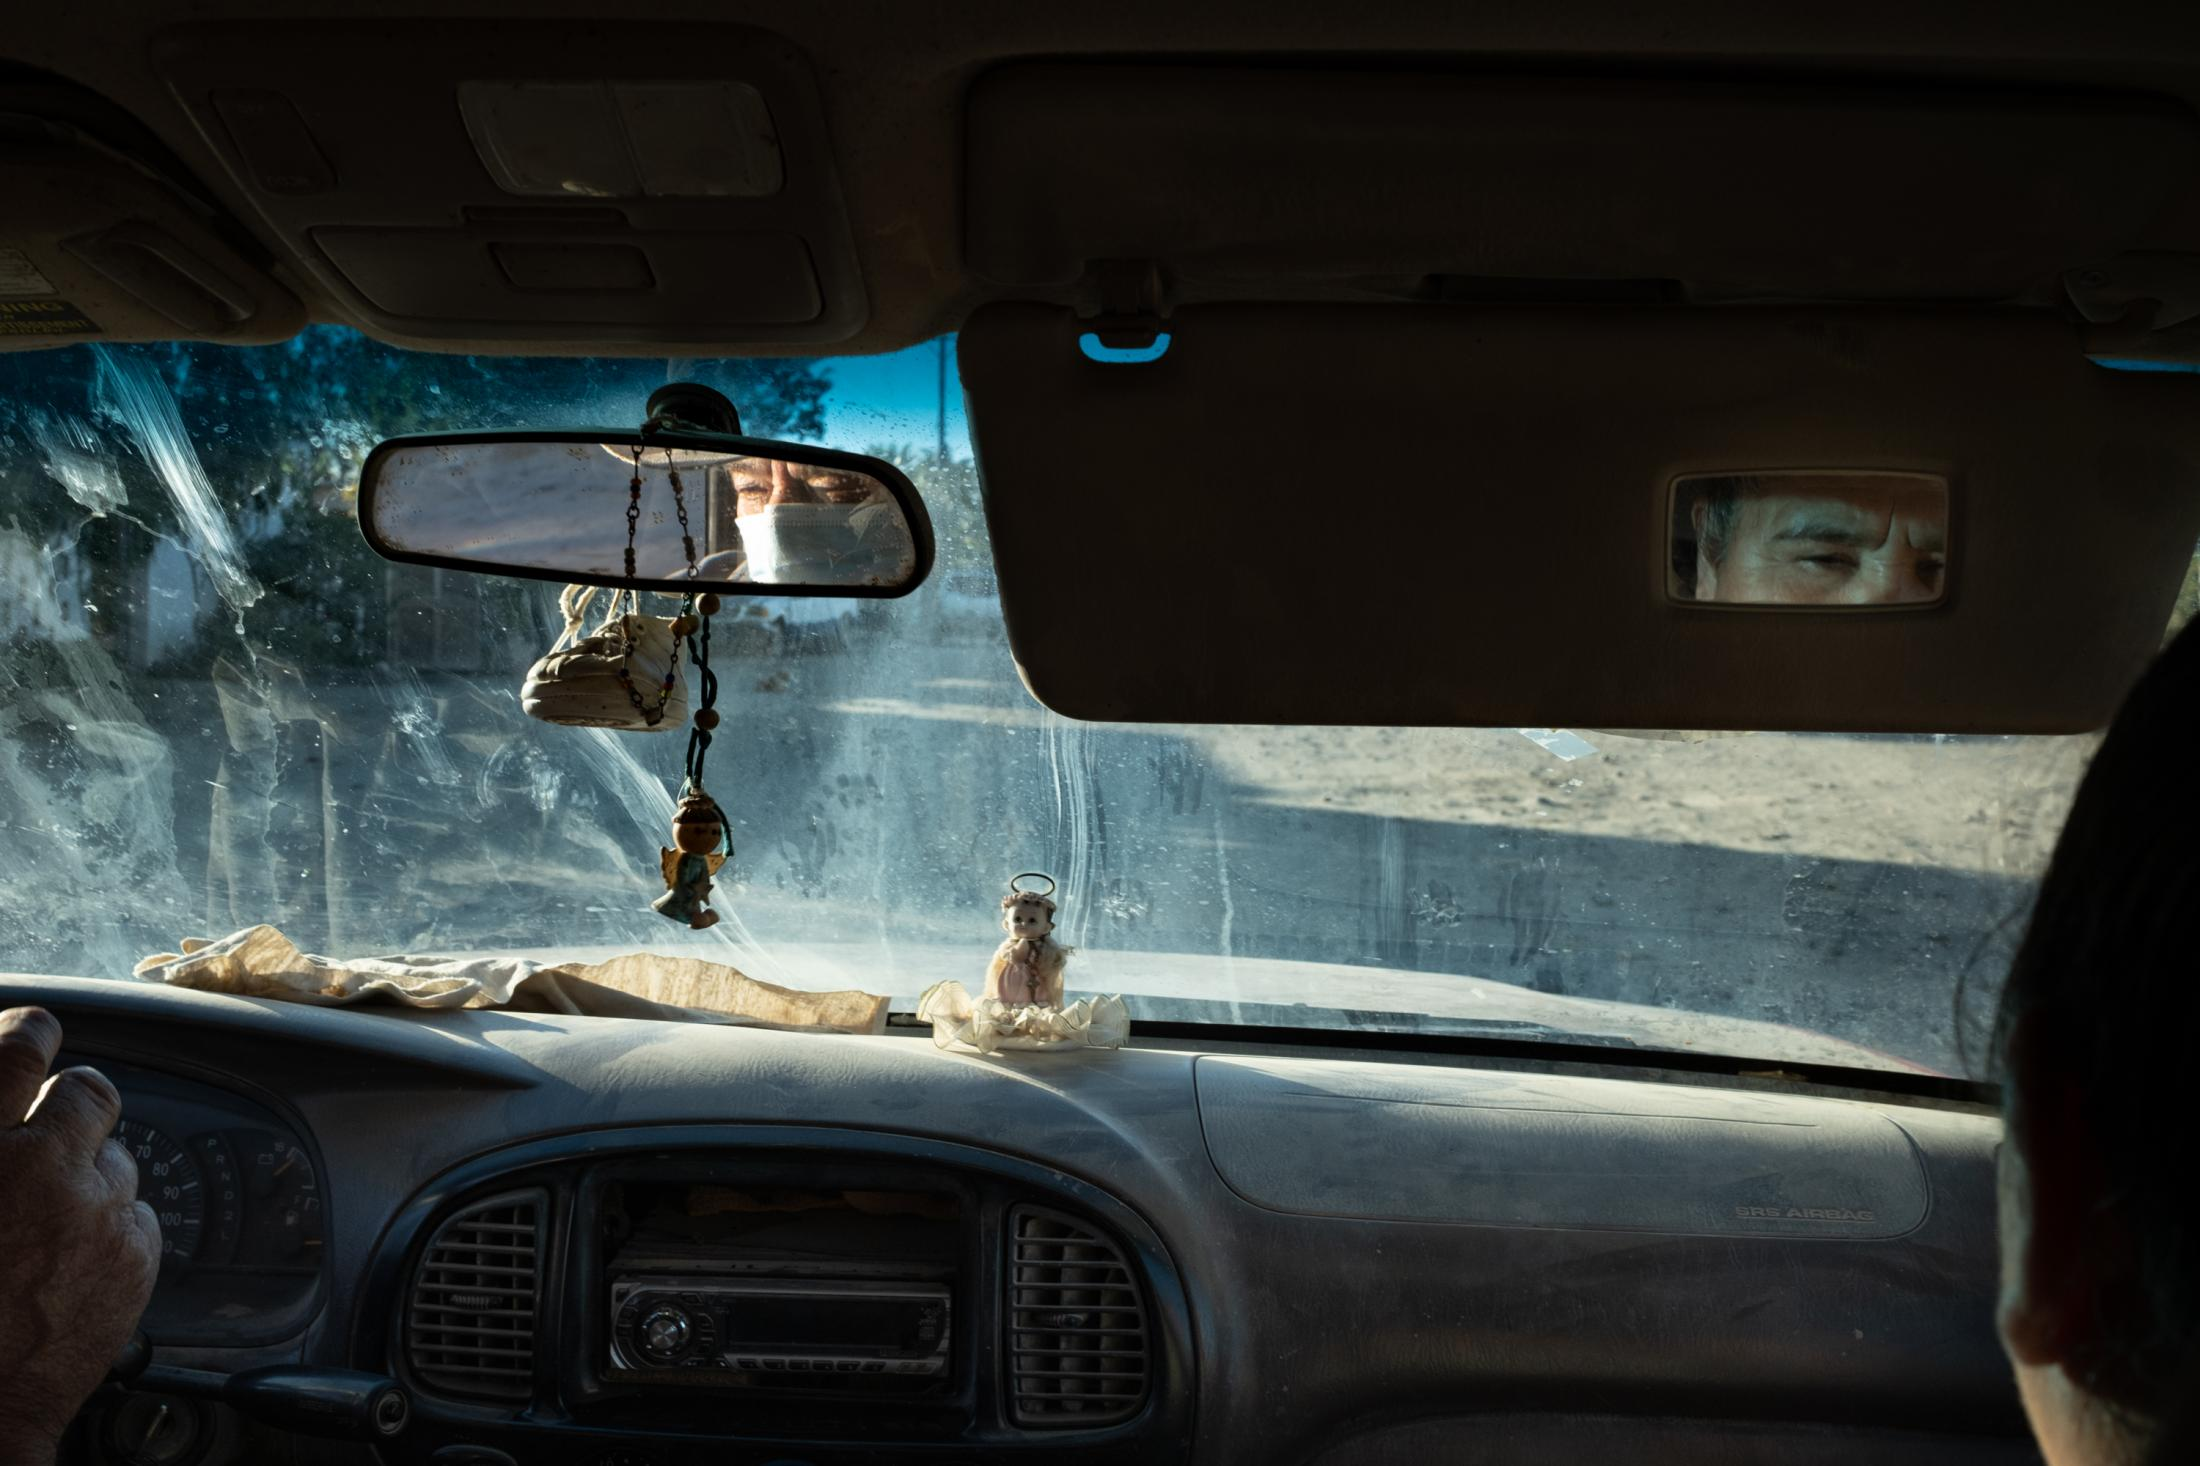 Felipe and Olga drive to buy food for their goats in San Juanico, Baja California, Mexico, January, 23rd, 2021. The land is parche at best after no rain for three years, and the goats have been having a hard time finding the wild food that grows in the desert.